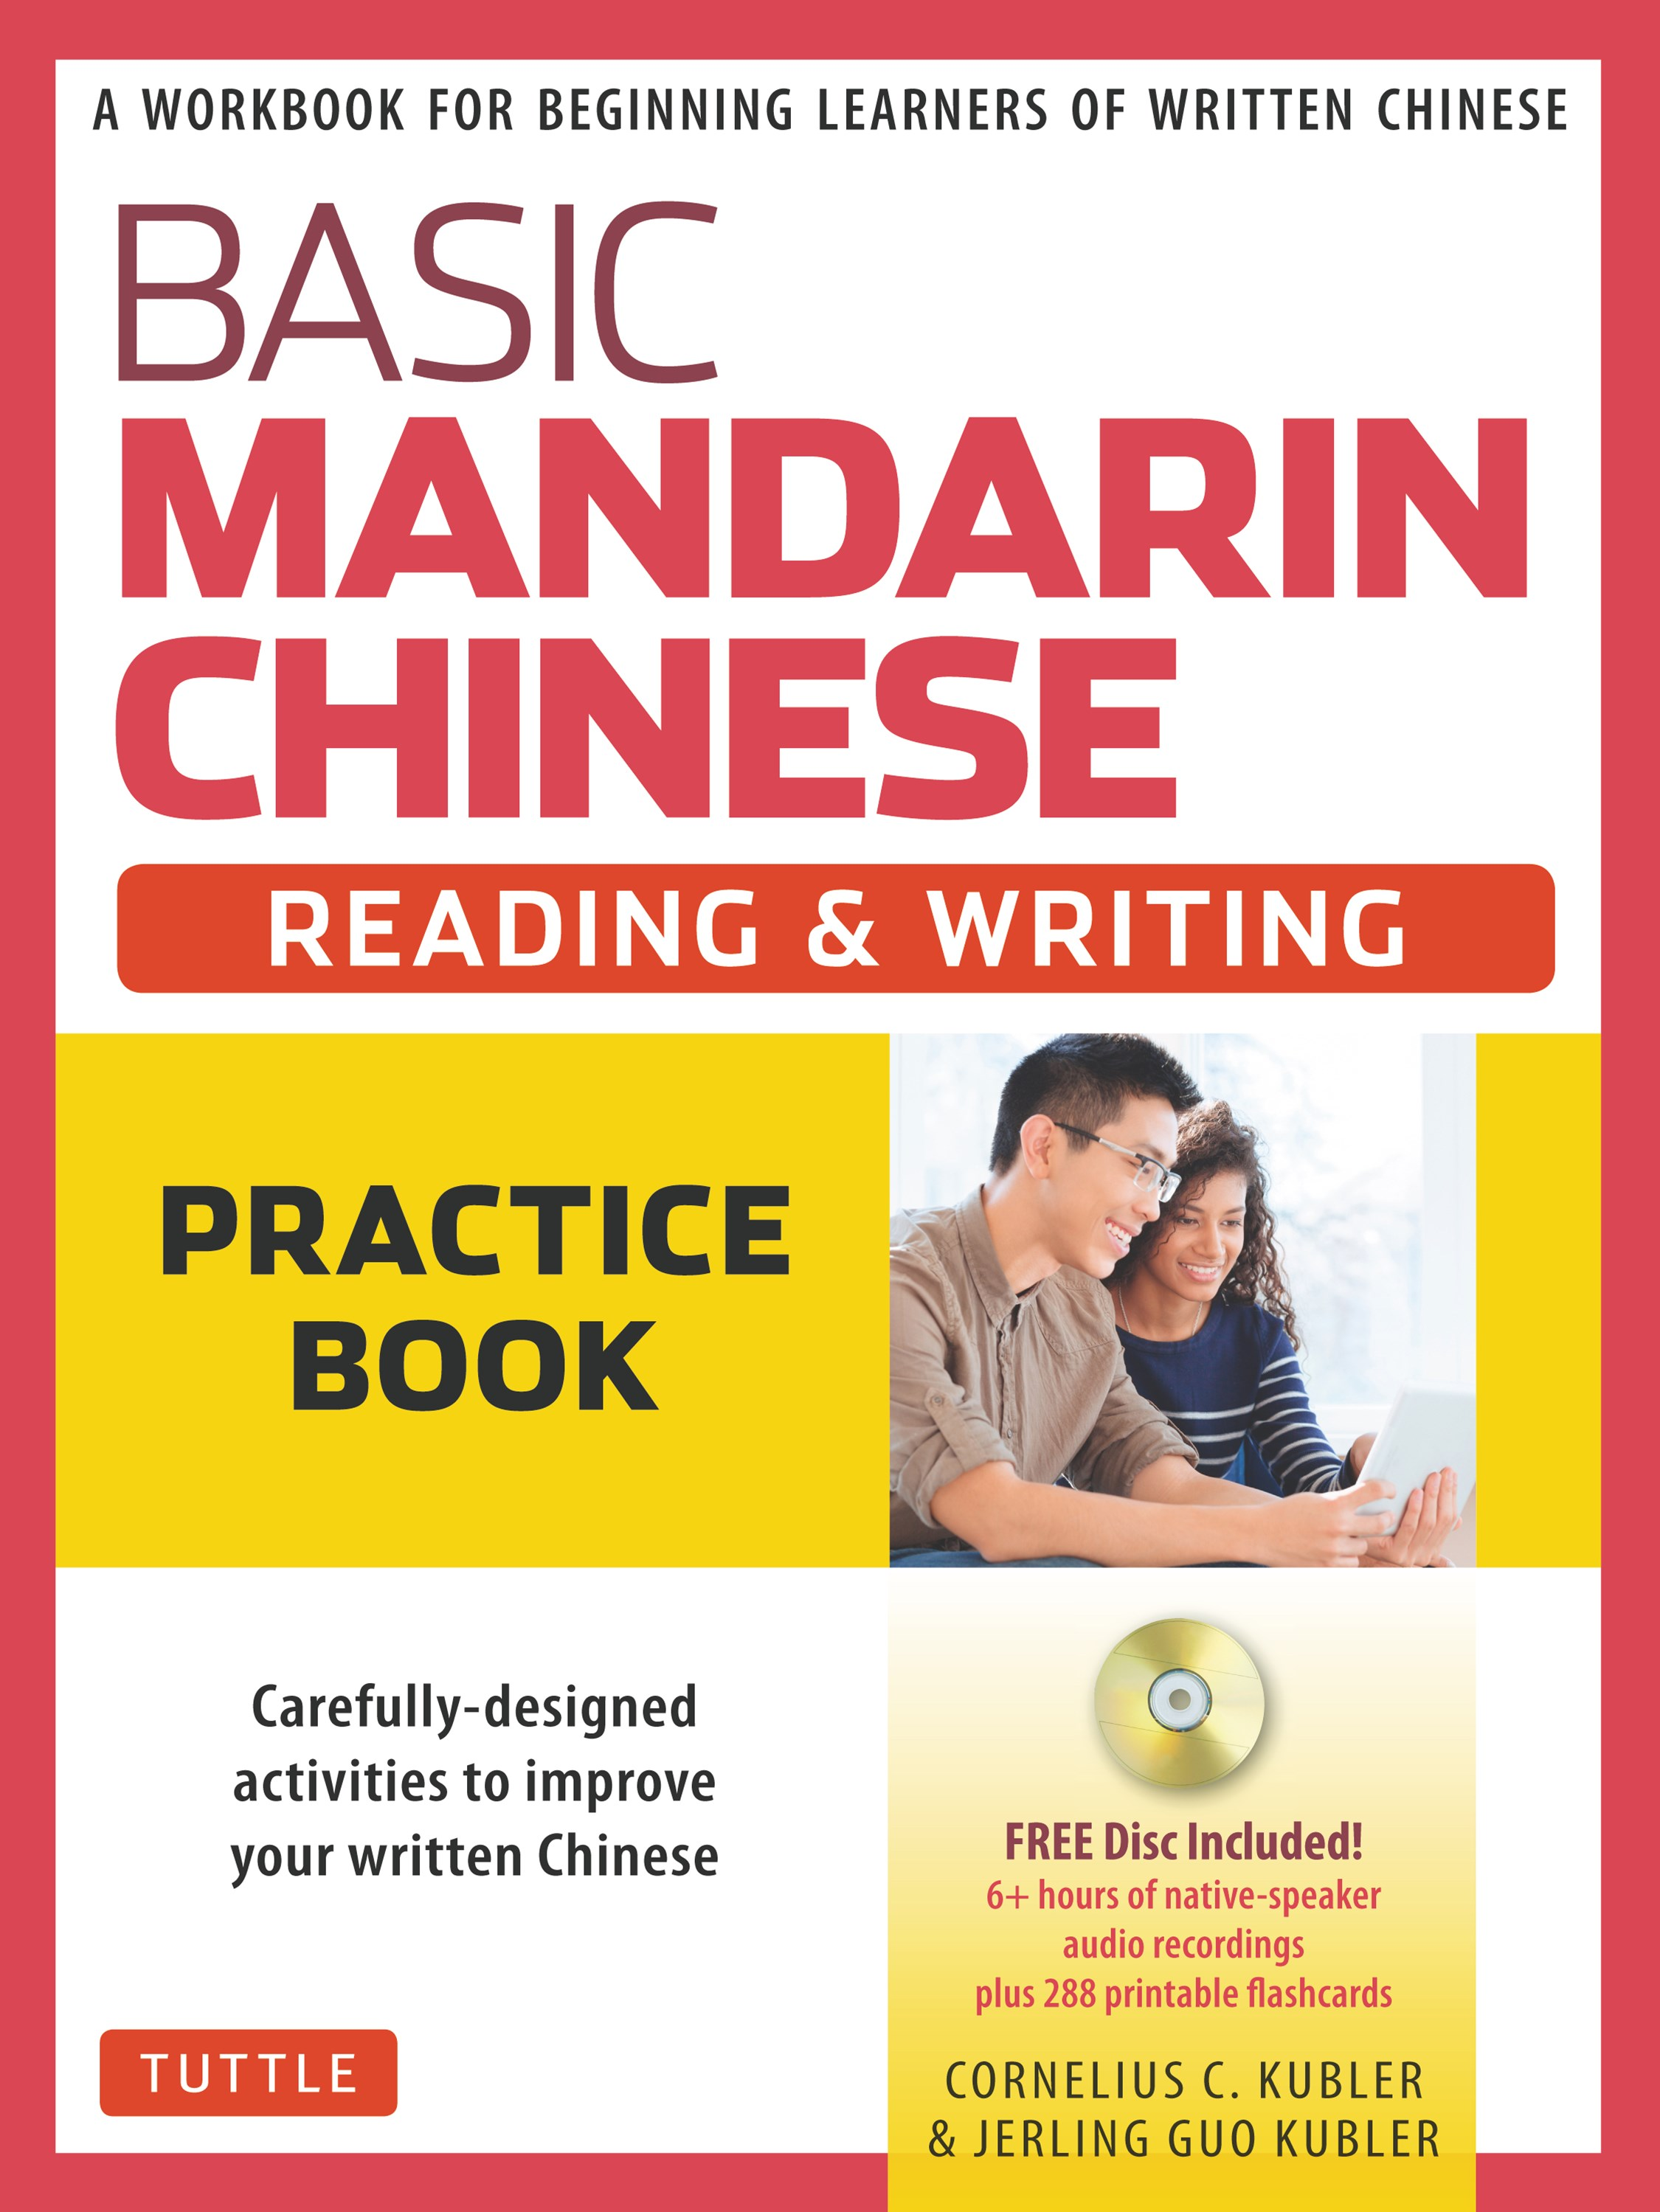 Basic Mandarin Chinese Reading & Writing Practice Book